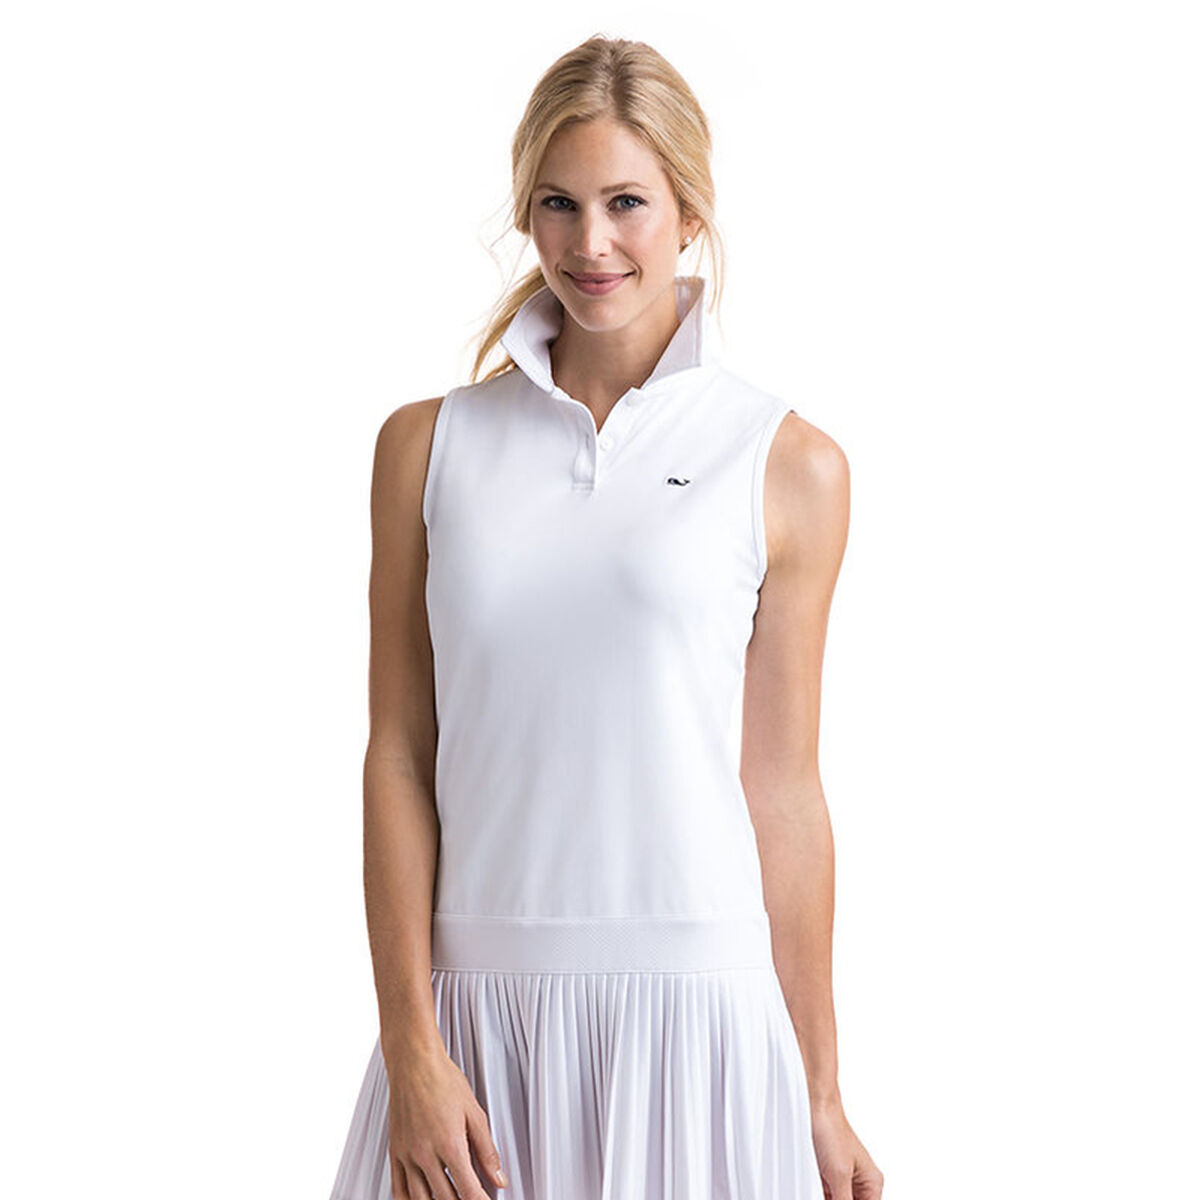 Images. Vineyard Vines Pleated Tennis Dress 91b97a11a